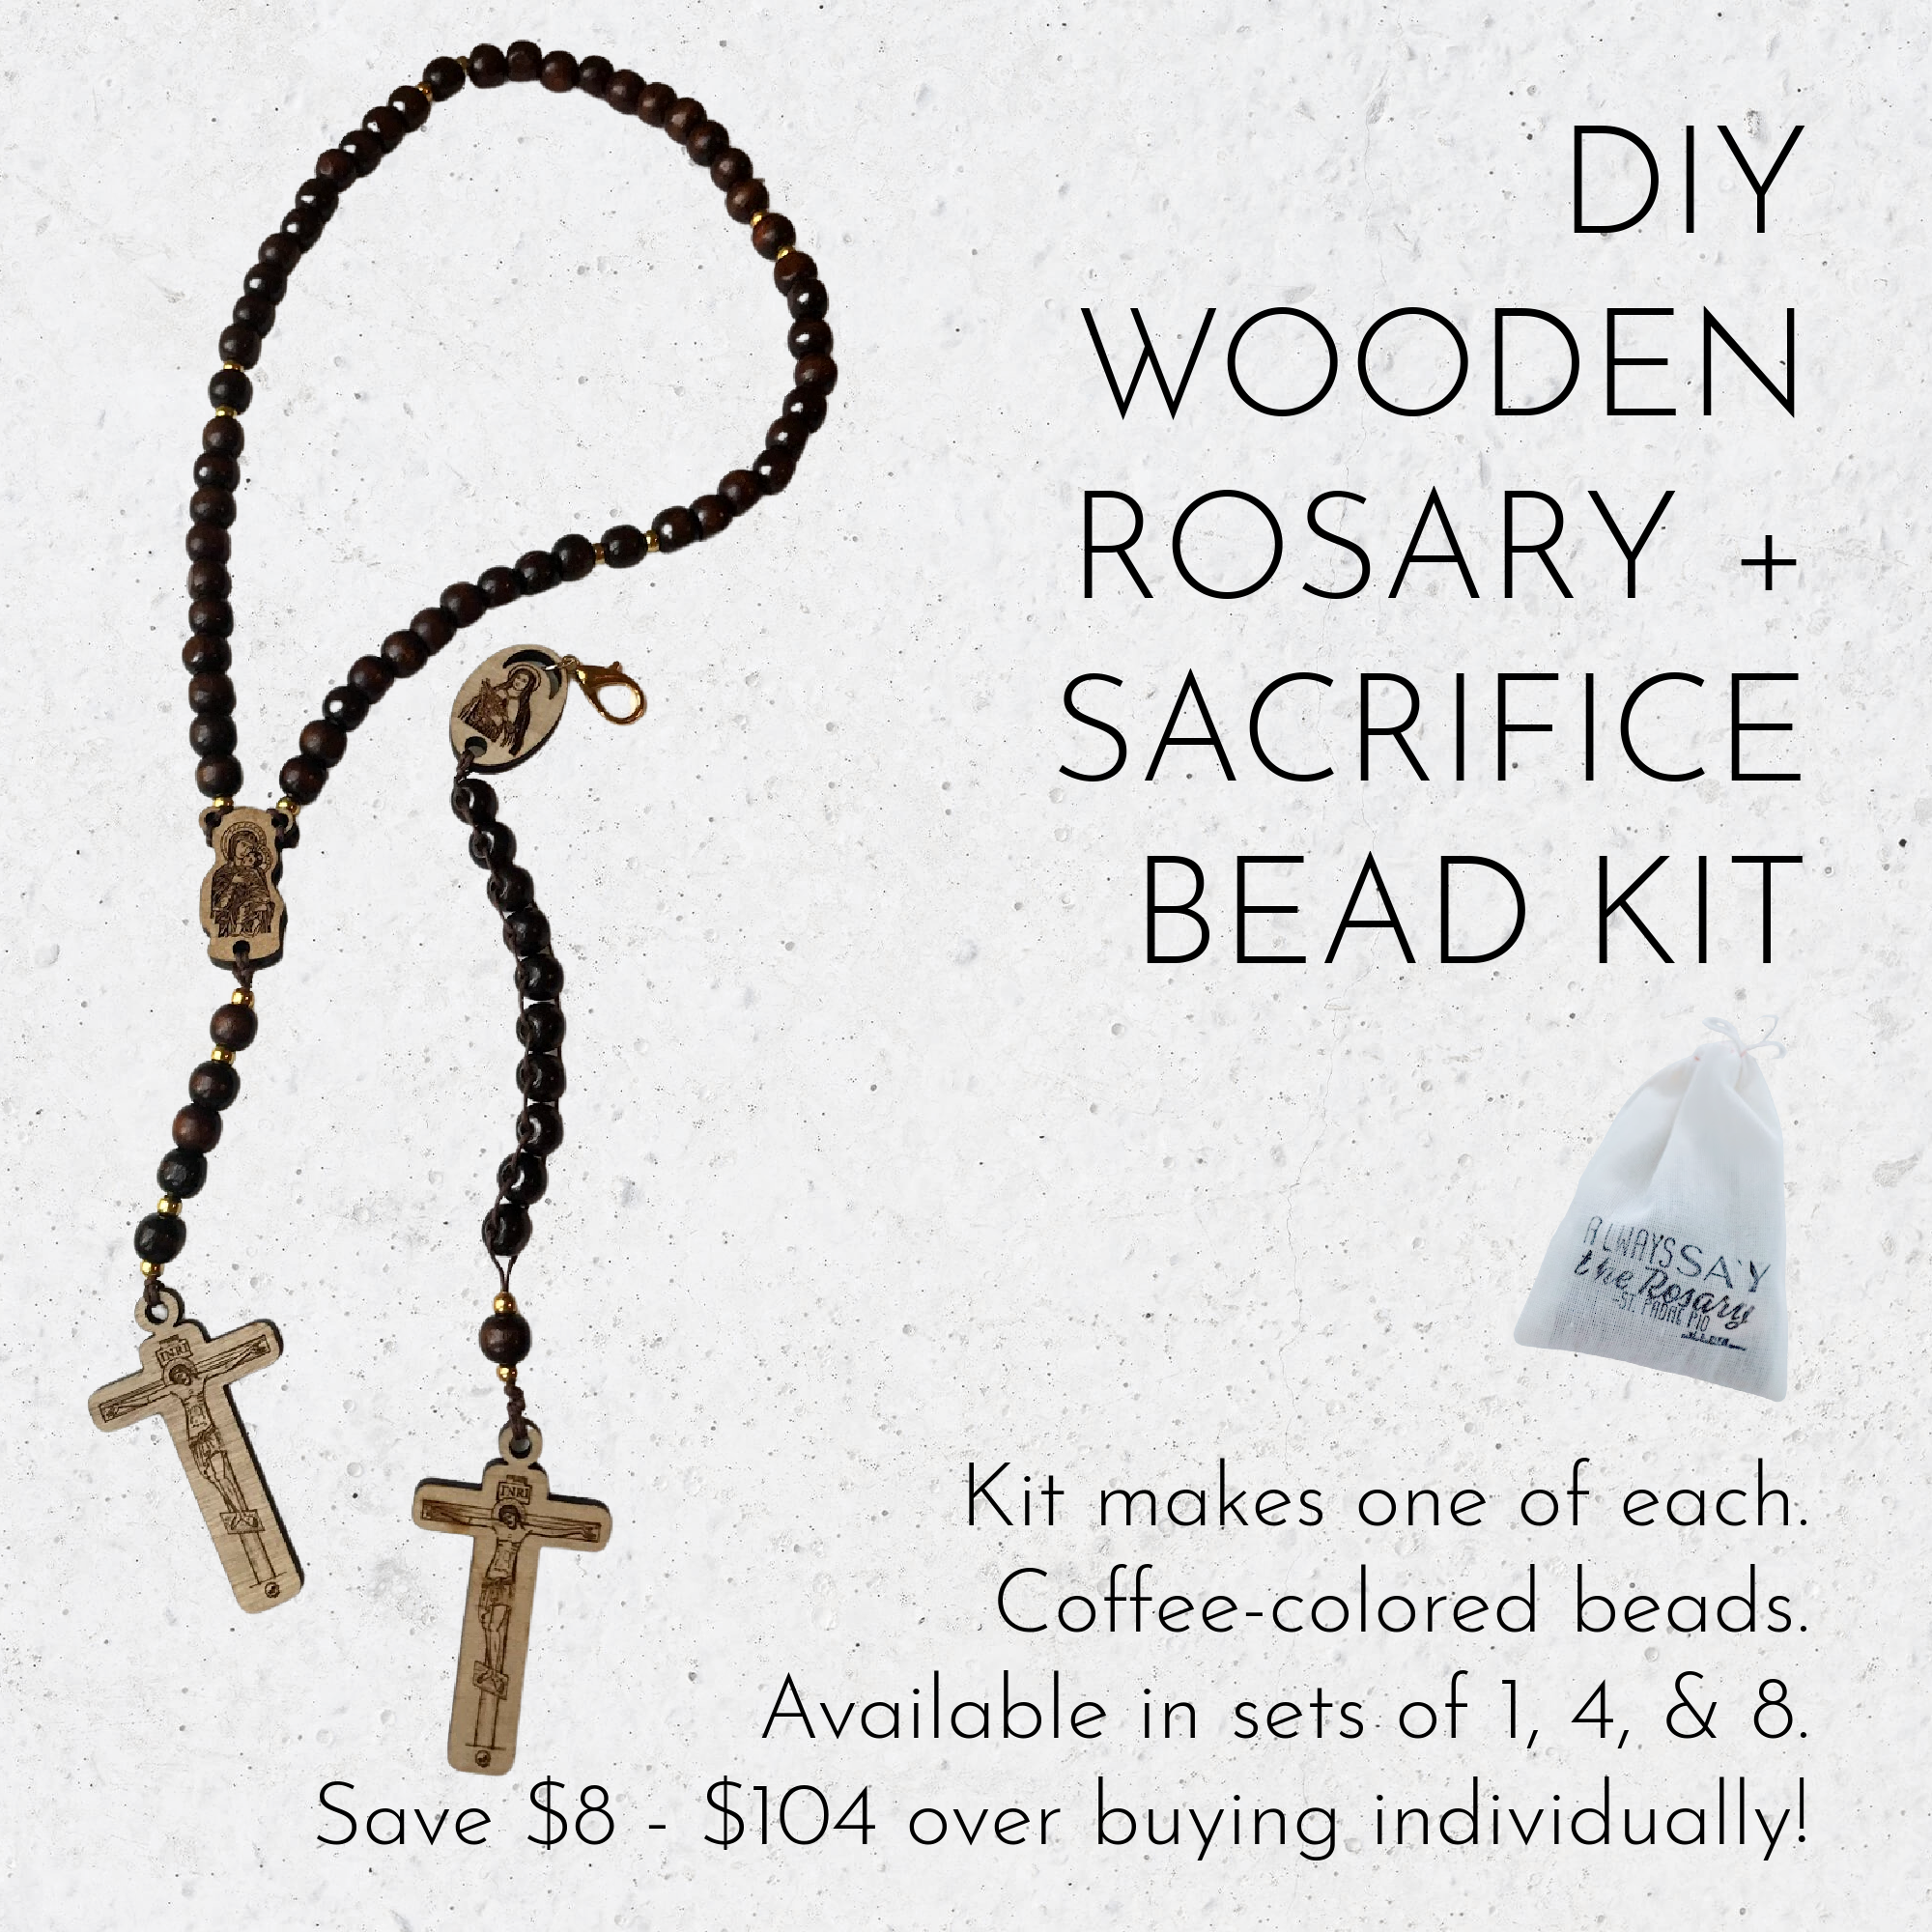 Wooden Rosary + Sacrifice Bead Kit (Makes One of Each)